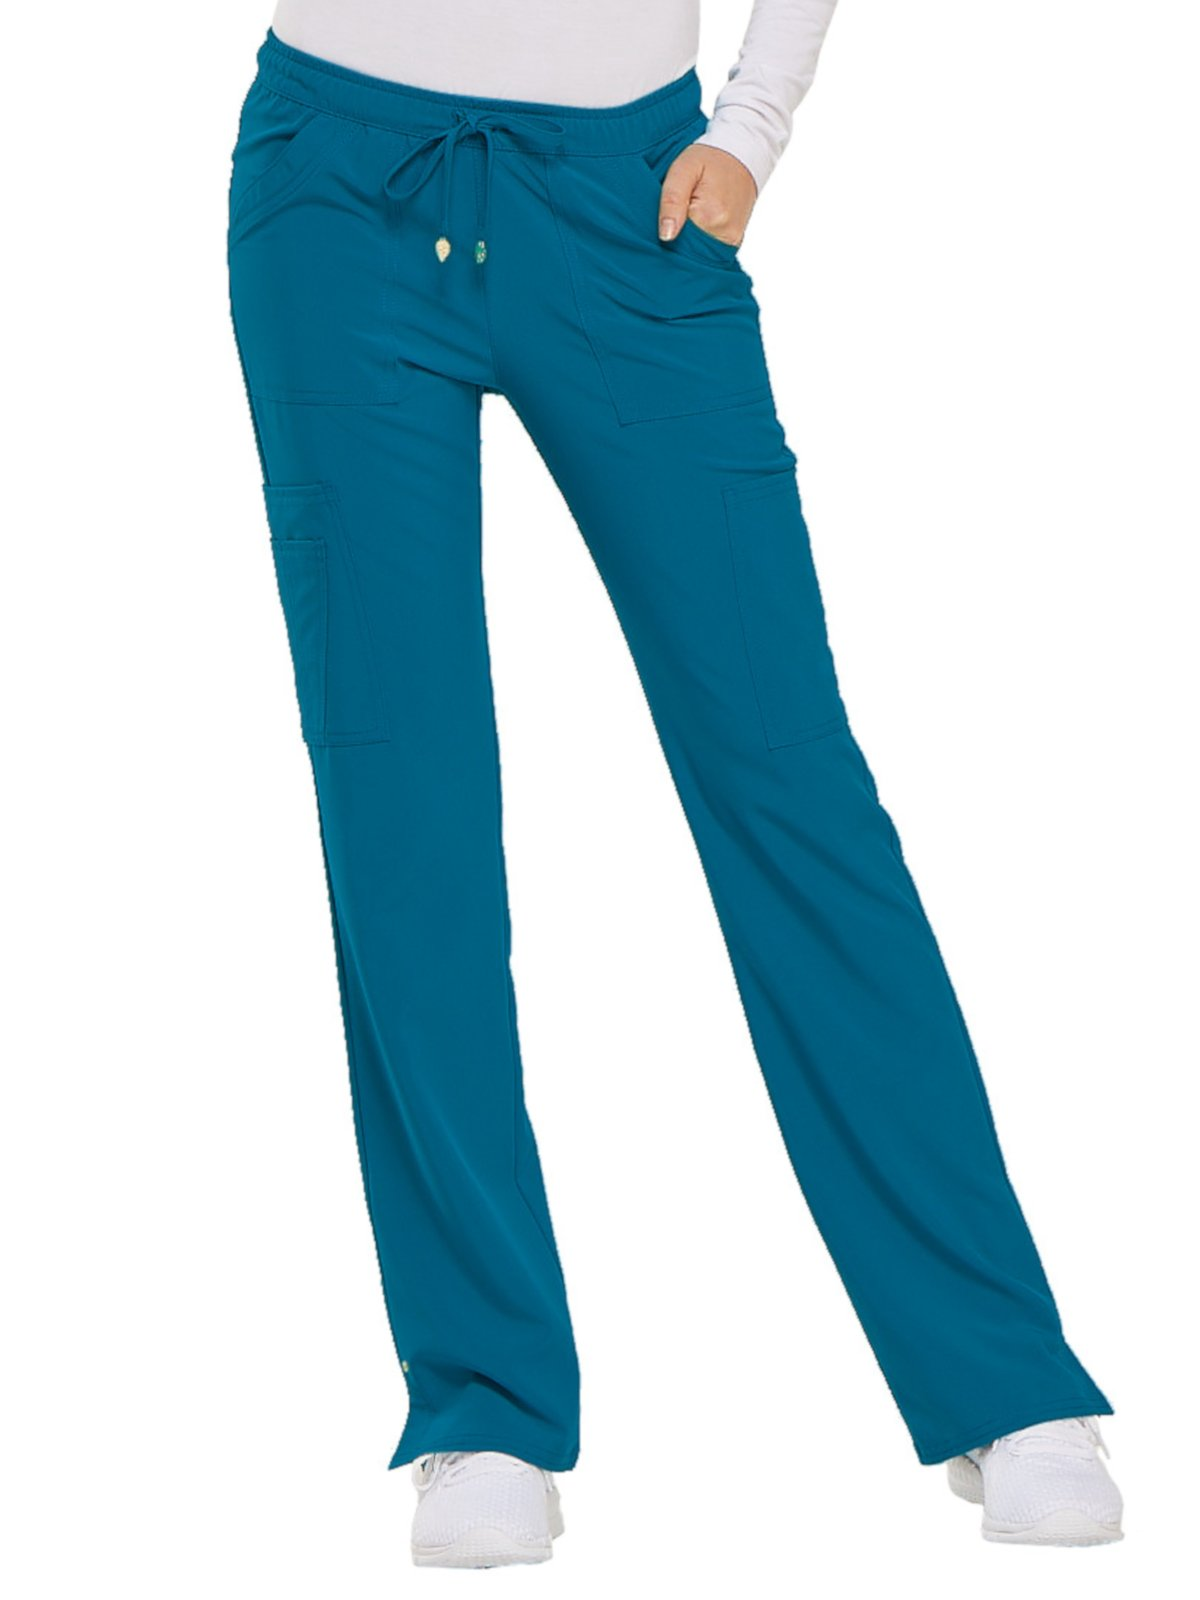 HeartSoul Love Always Women's Charmed Low Rise Drawstring Cargo Scrub Pant Small Petite Caribbean Blue